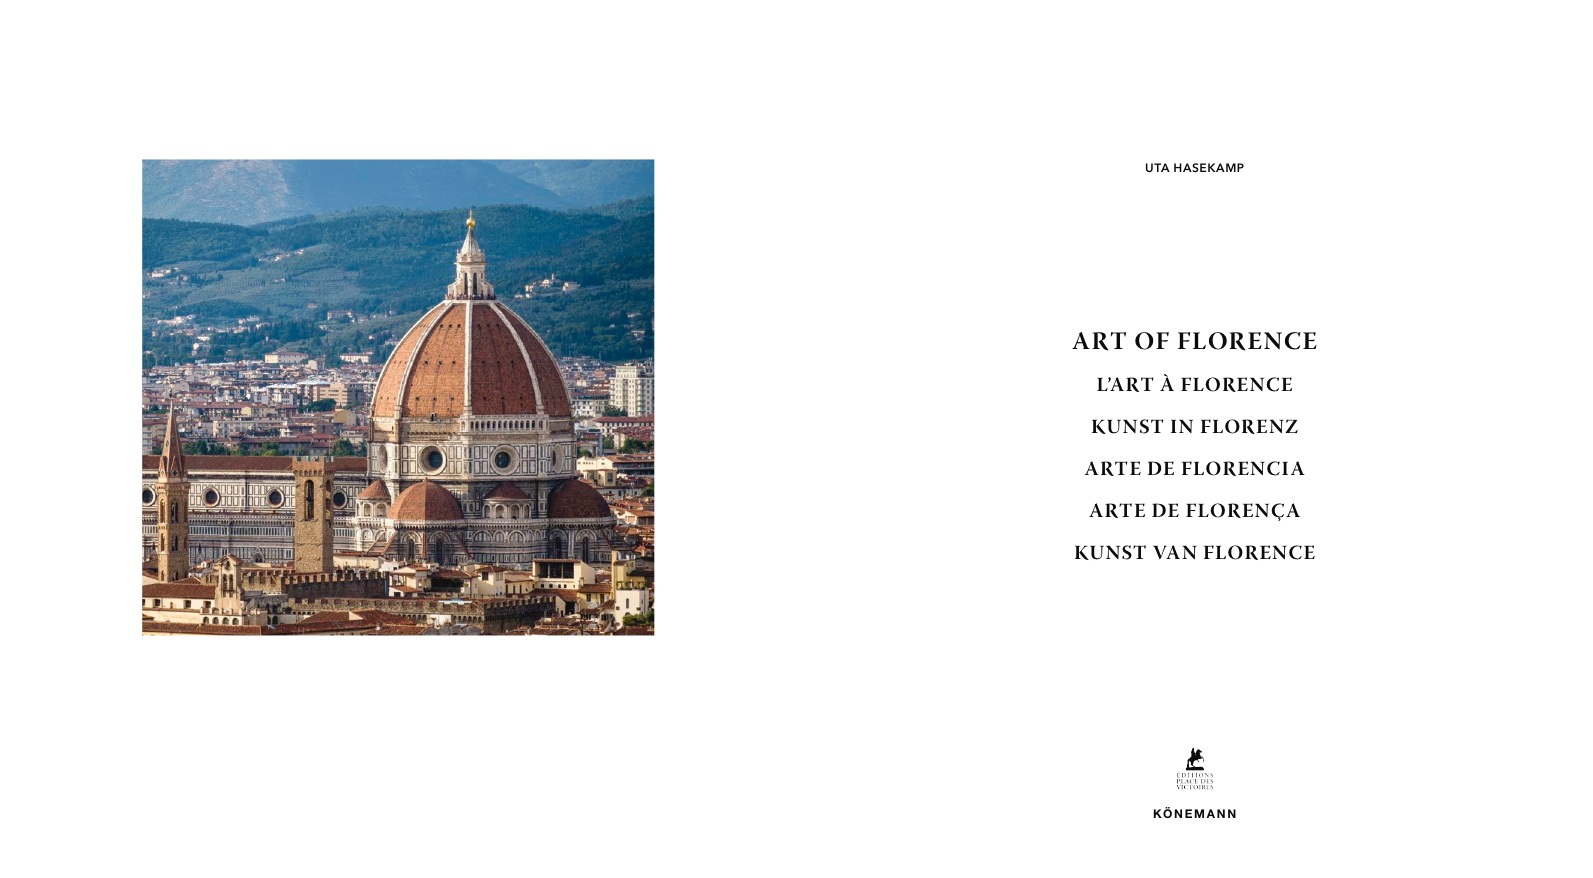 Art of Florence